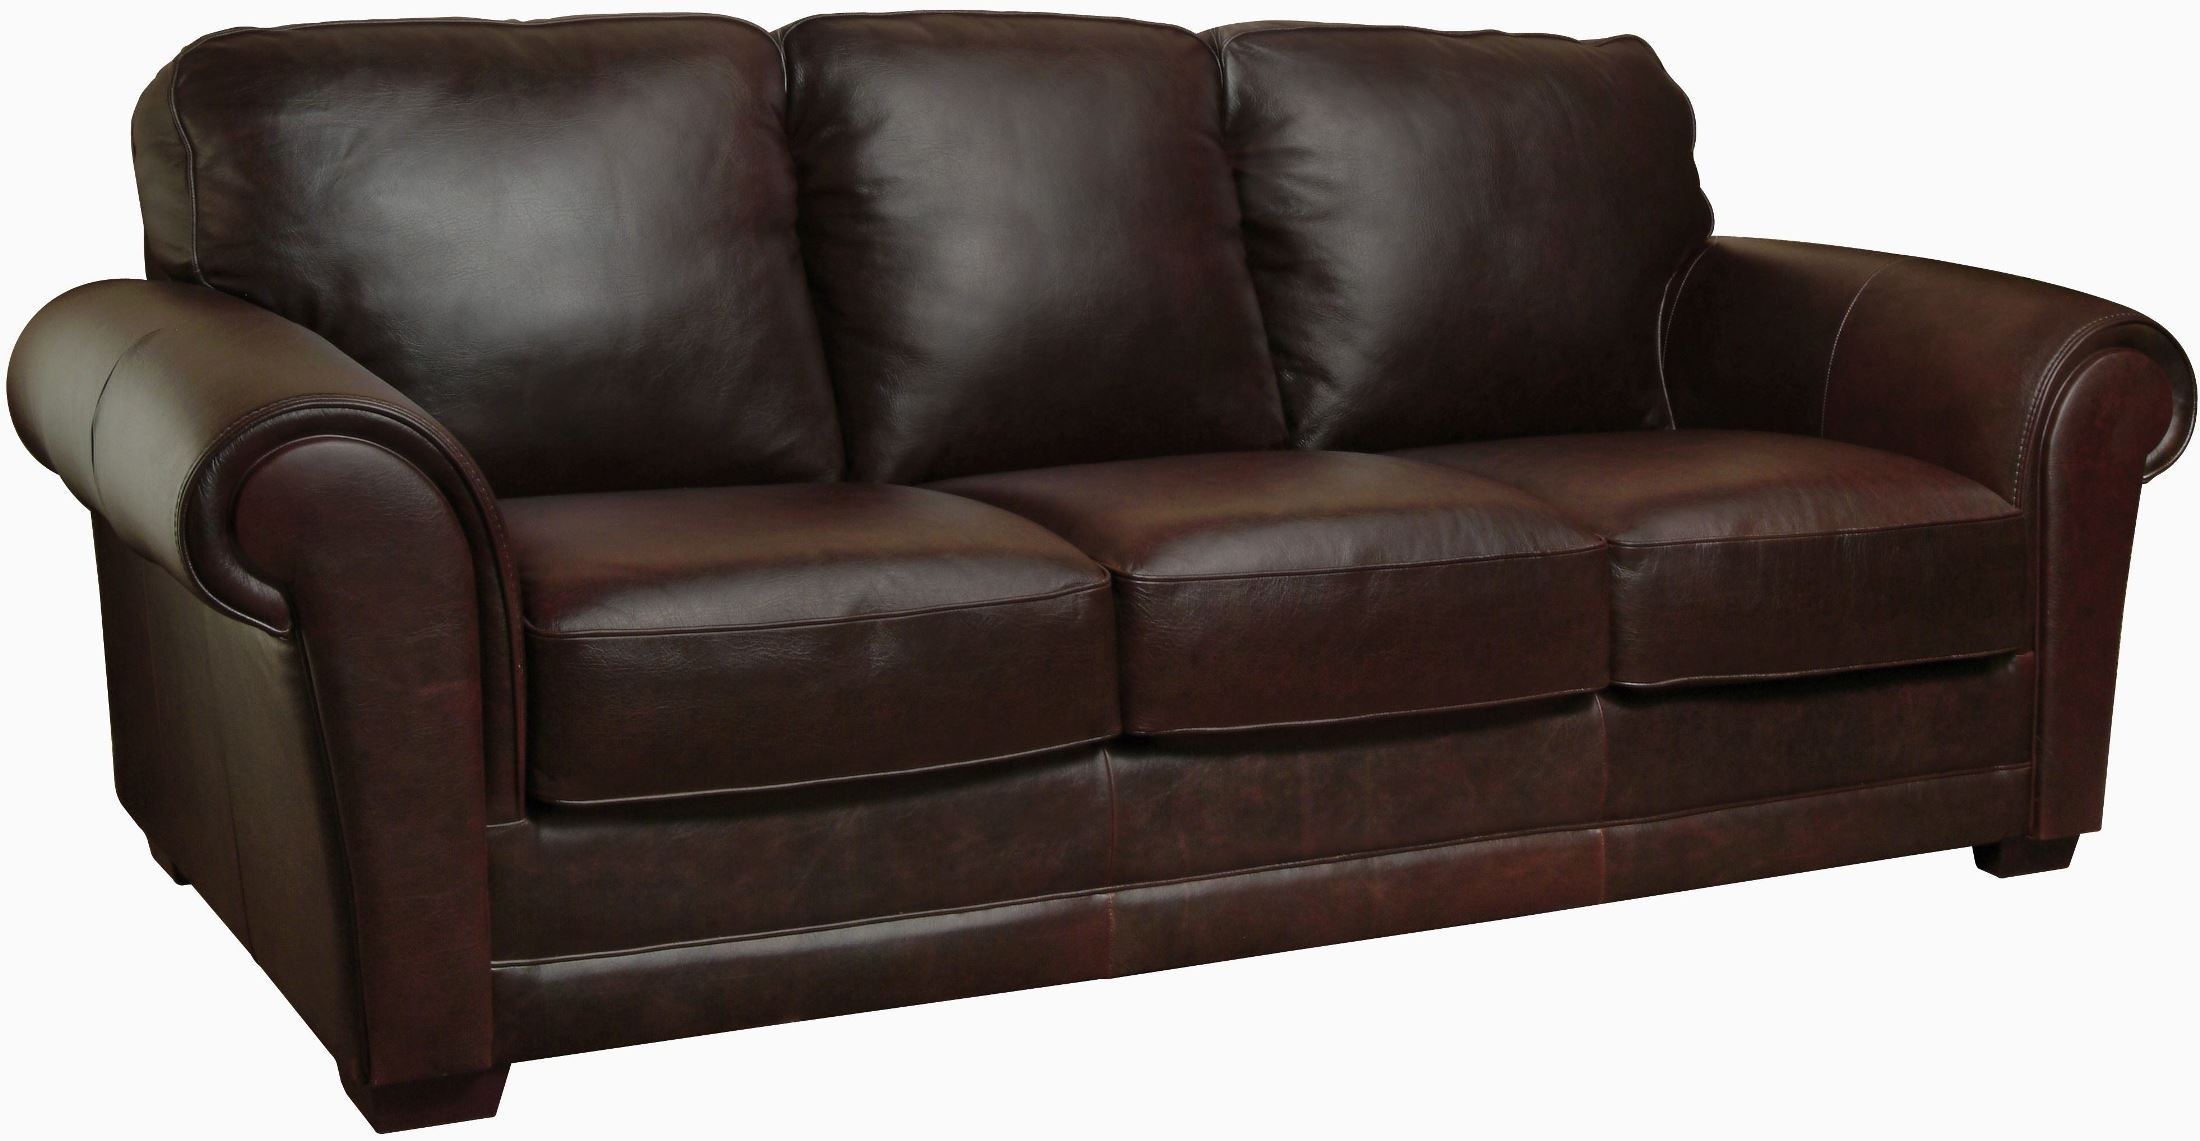 Mark italian leather sofa from luke leather coleman for Italian leather sofa